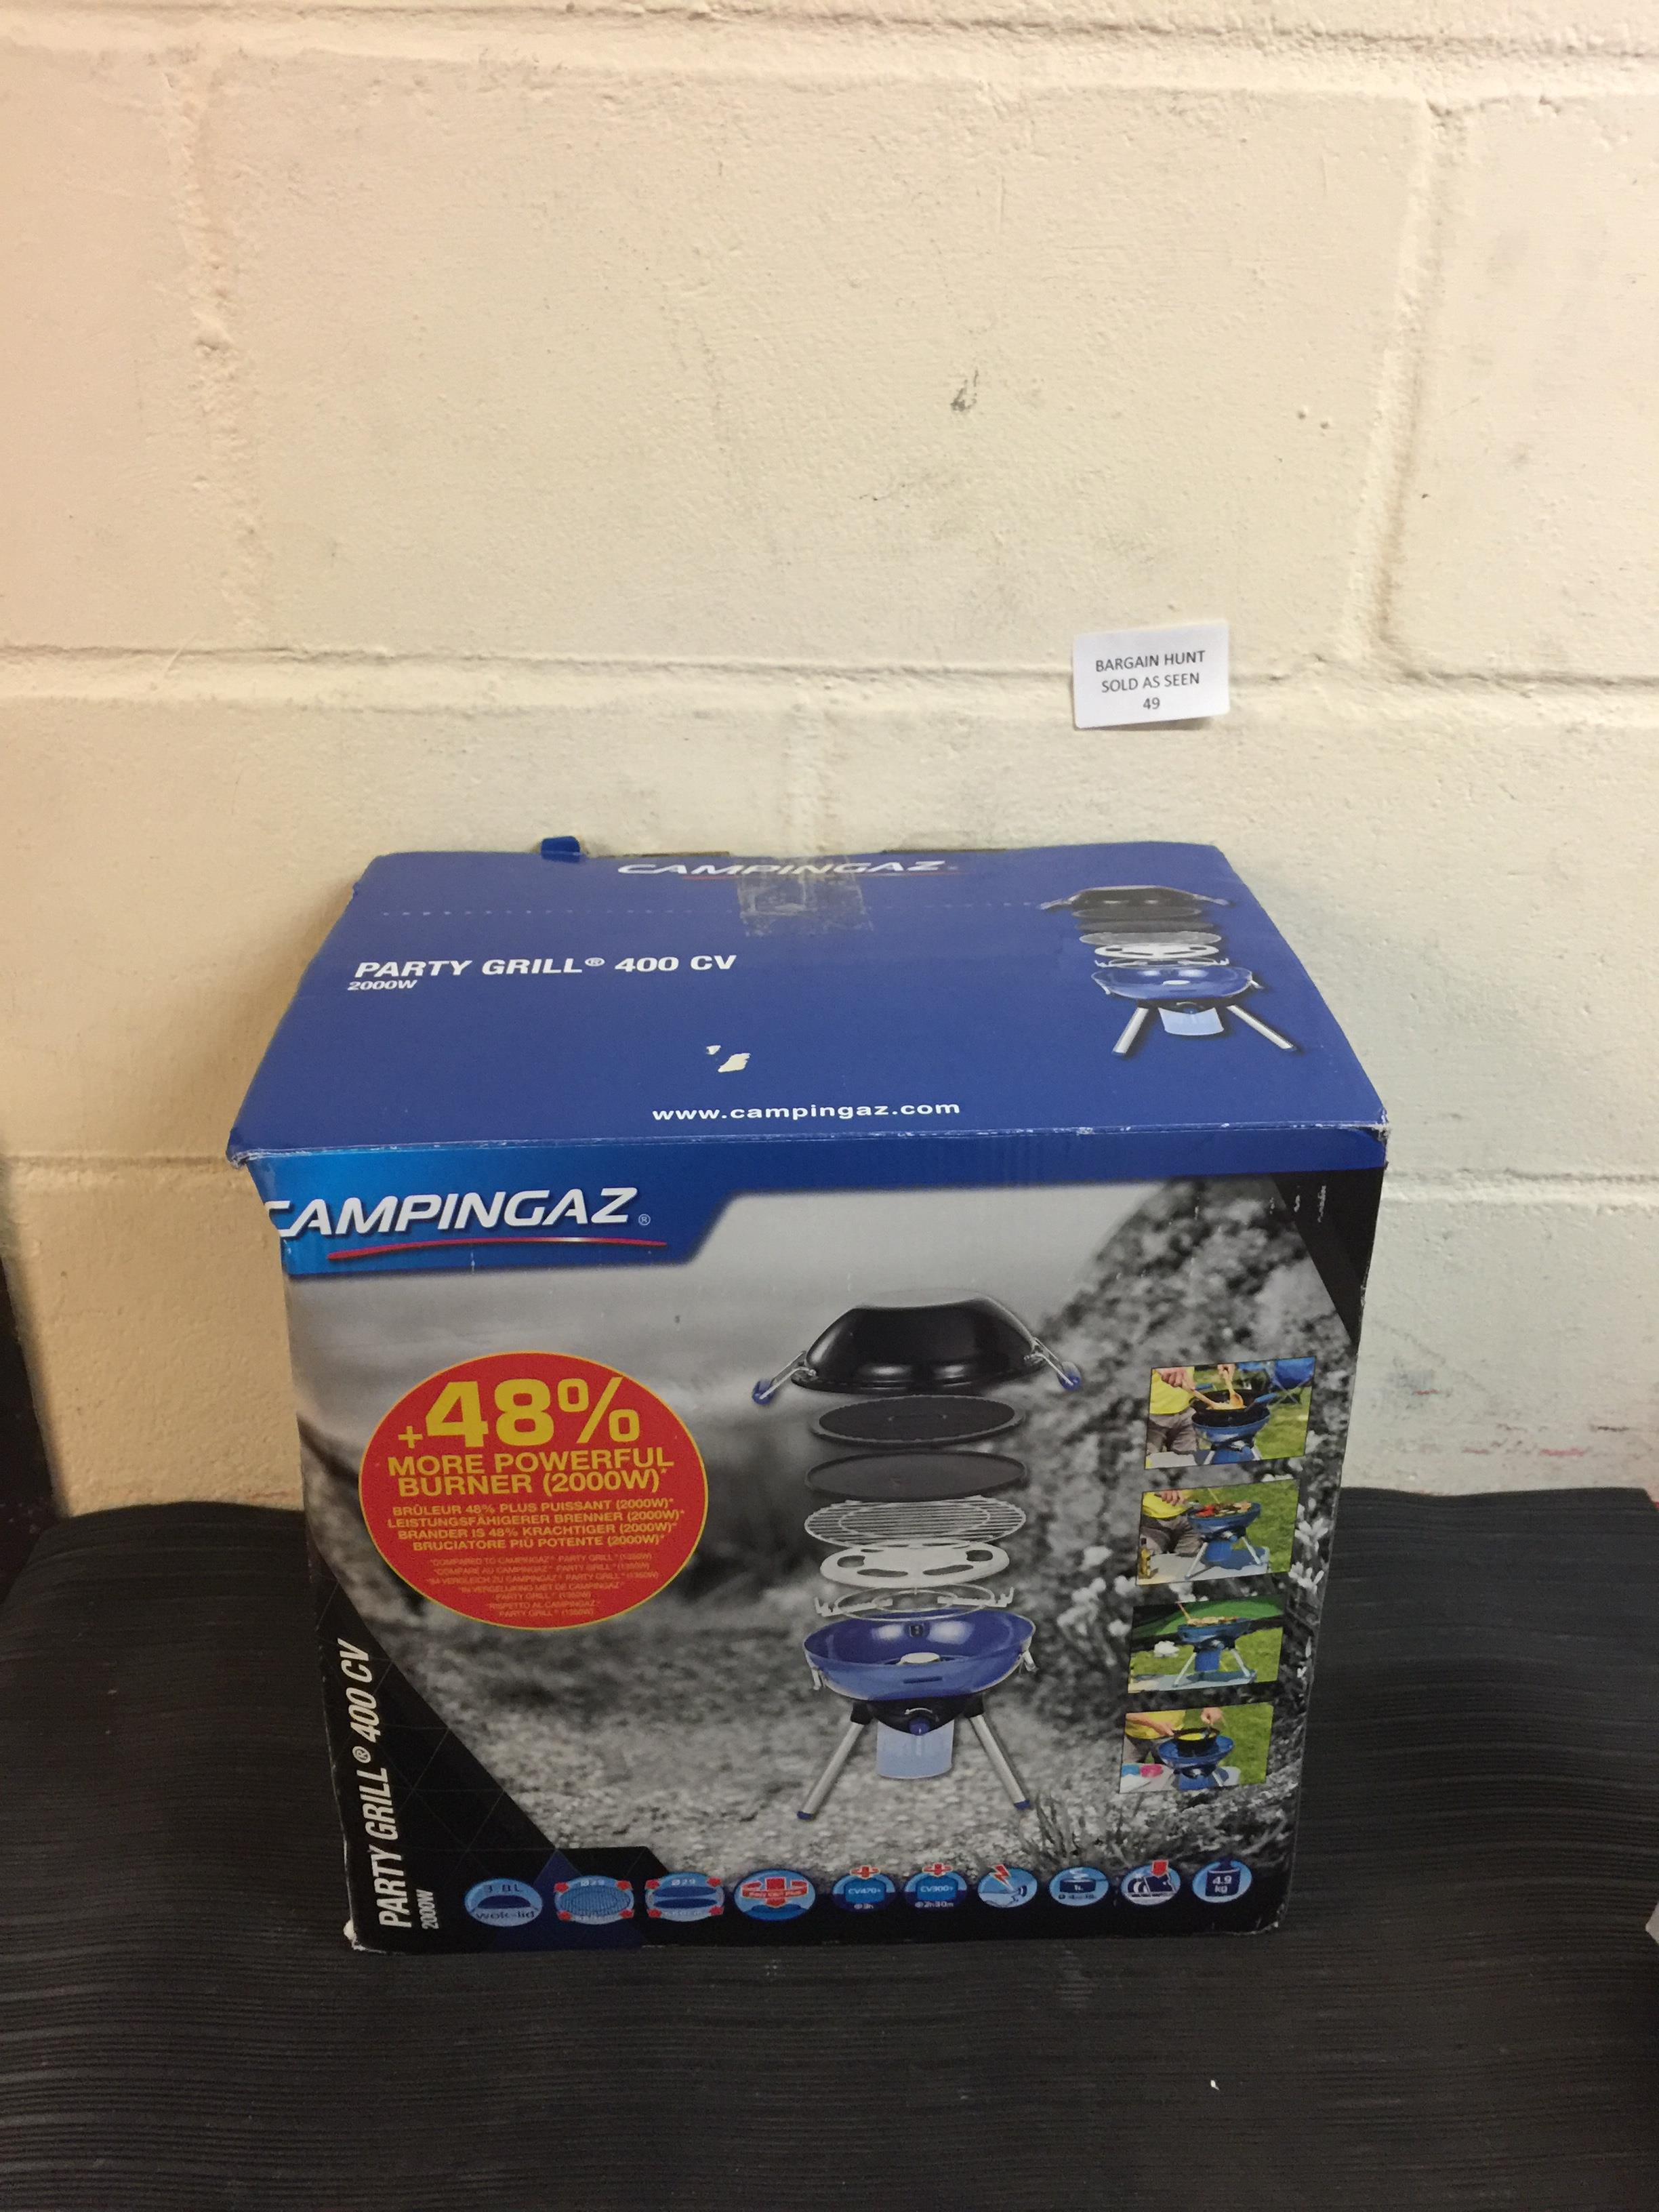 Lot 49 - Campingaz Party Grill CampStove Grill RRP £78.99